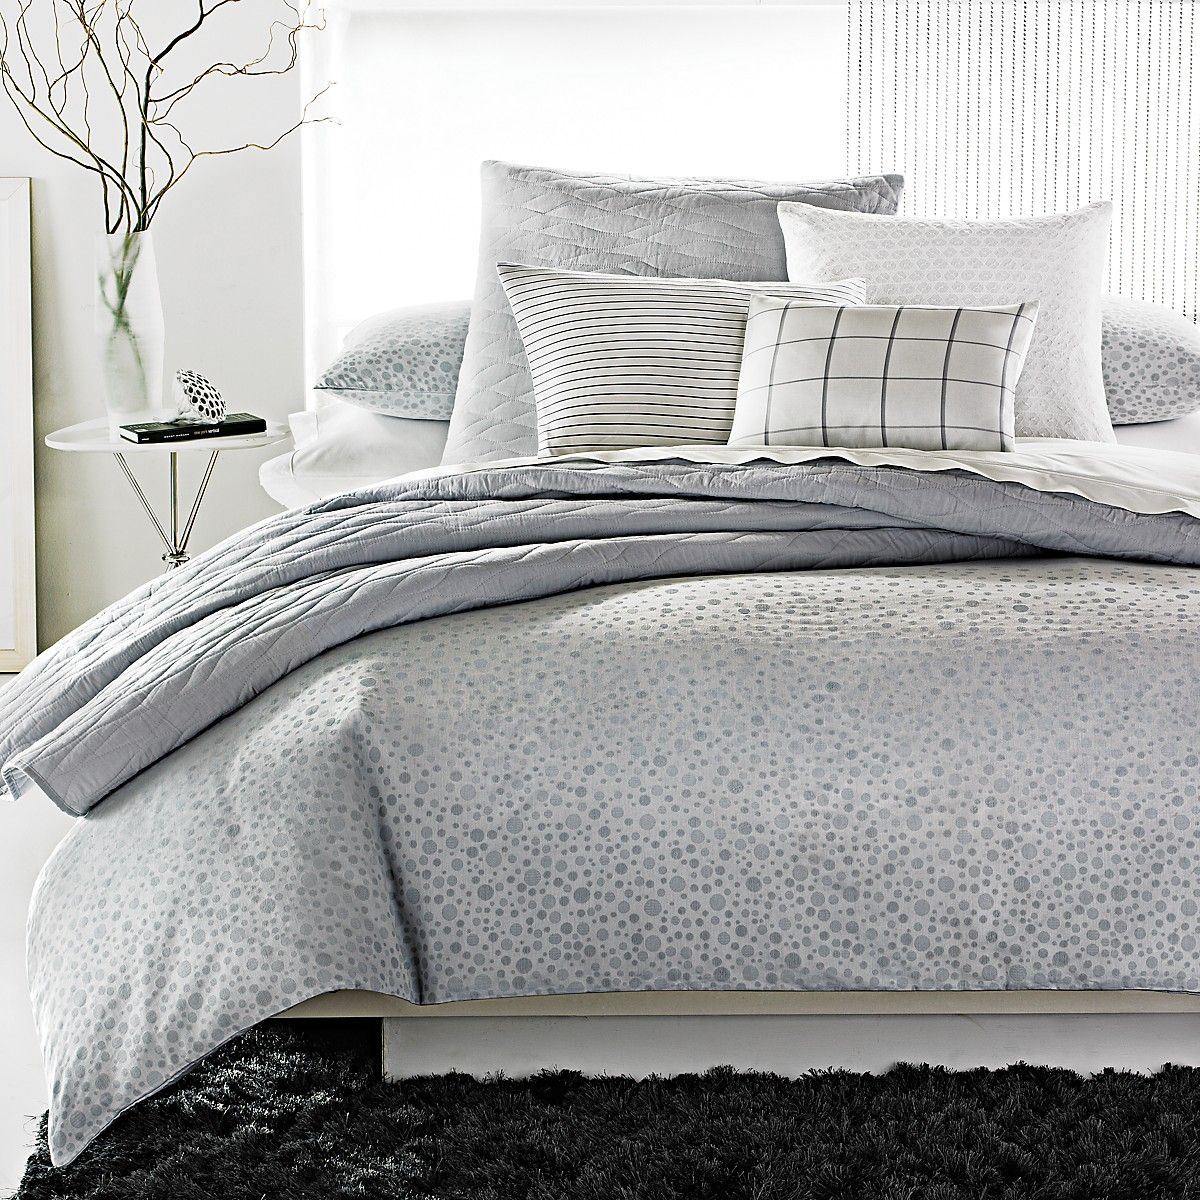 bedding quintessence calvin collection luxury klein bed